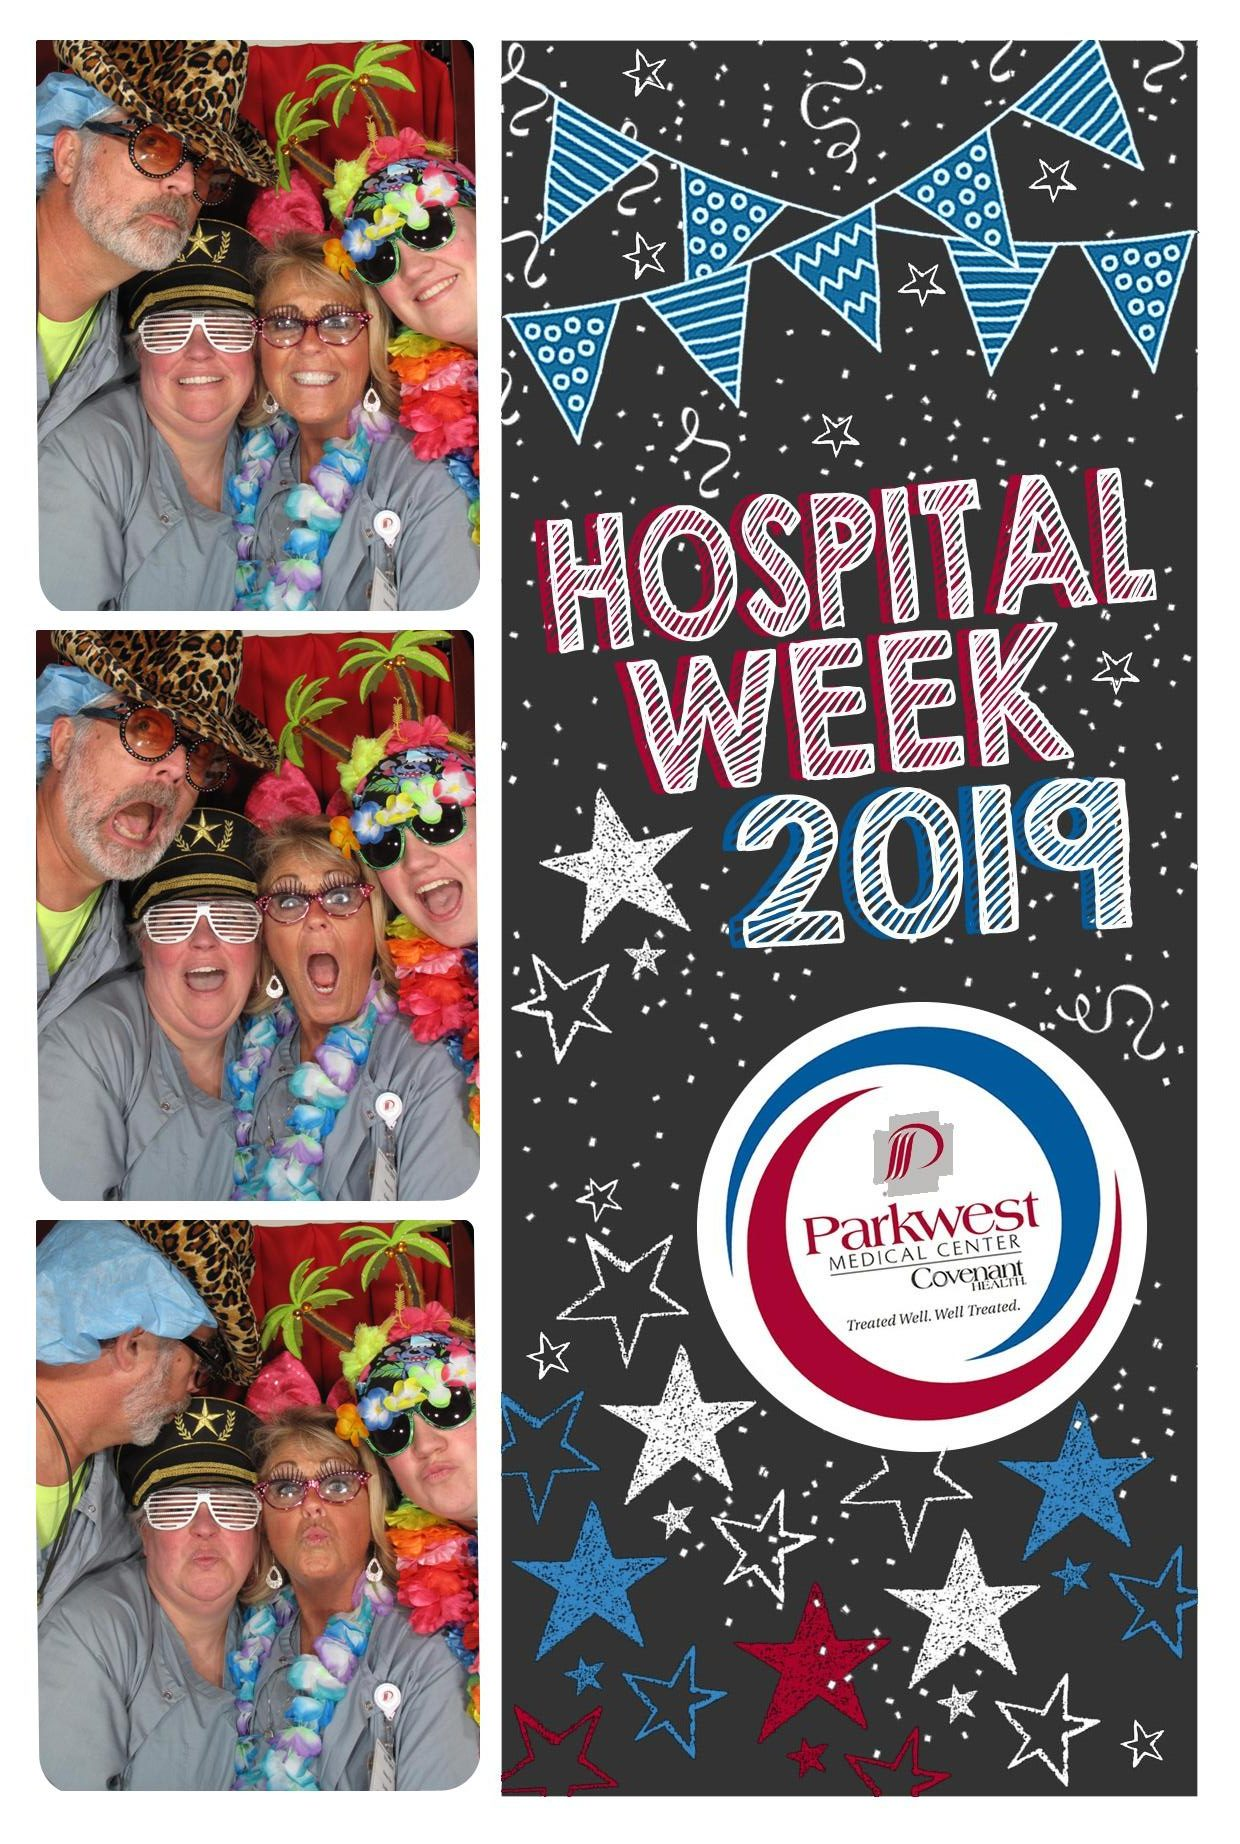 Photo Booth with Boulevard Surgery Center team.